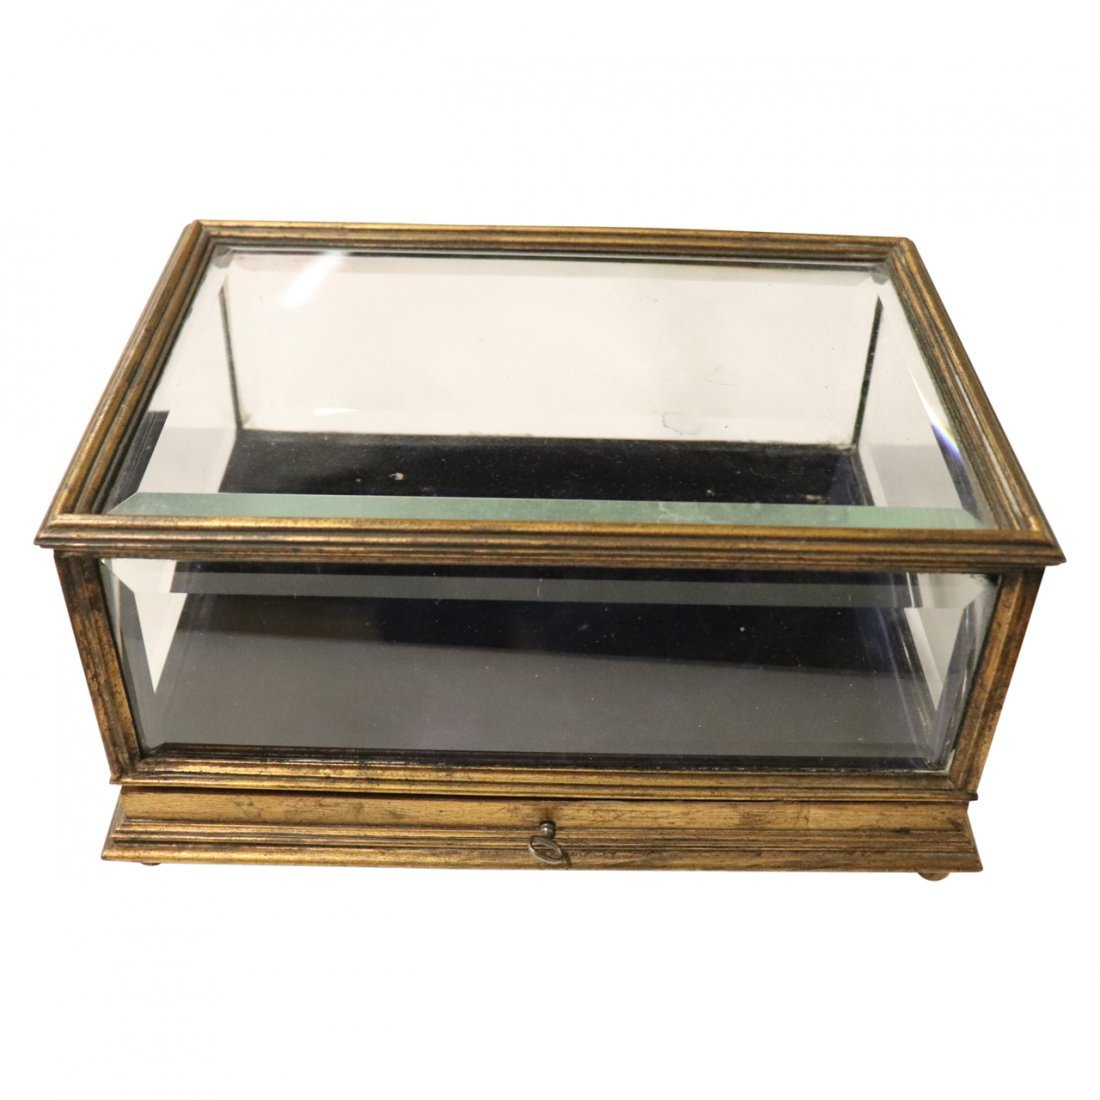 Fine Antique Bronze and Glass Casket